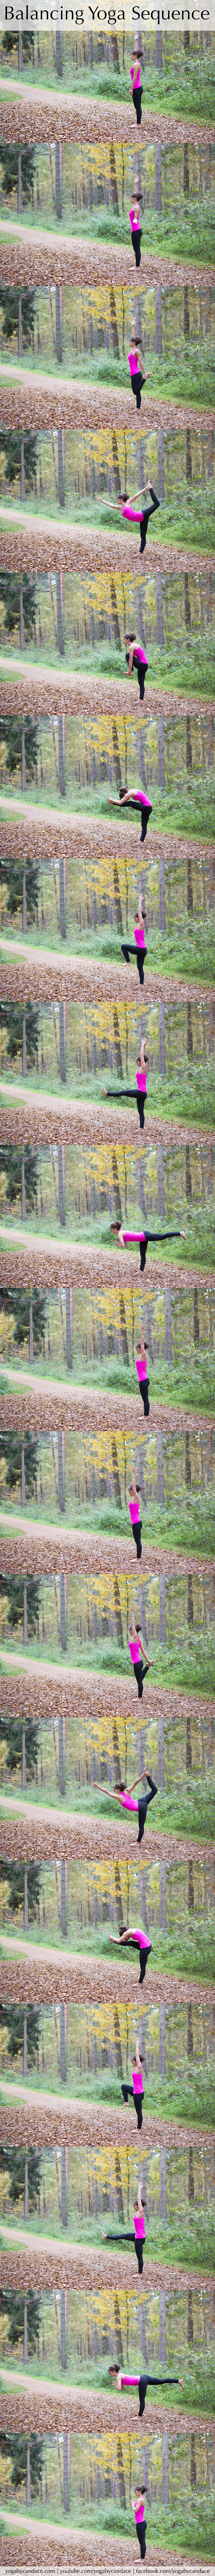 Pin it! A yoga sequence for balance - excellent for runners and athletes.